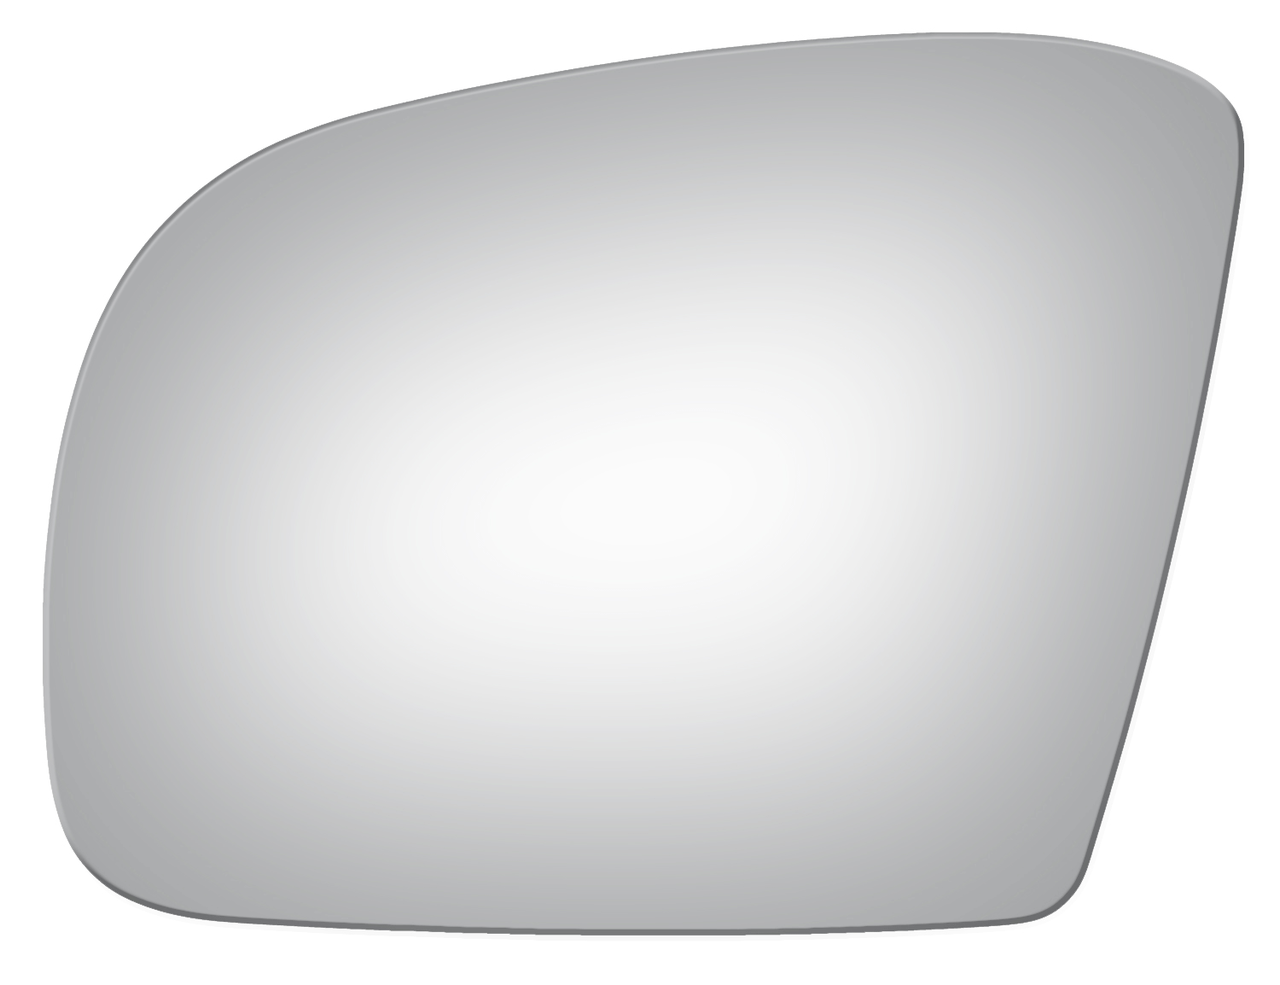 2008 mercedes benz gl450 driver side mirror 4122 for Driver side mirror replacement mercedes benz